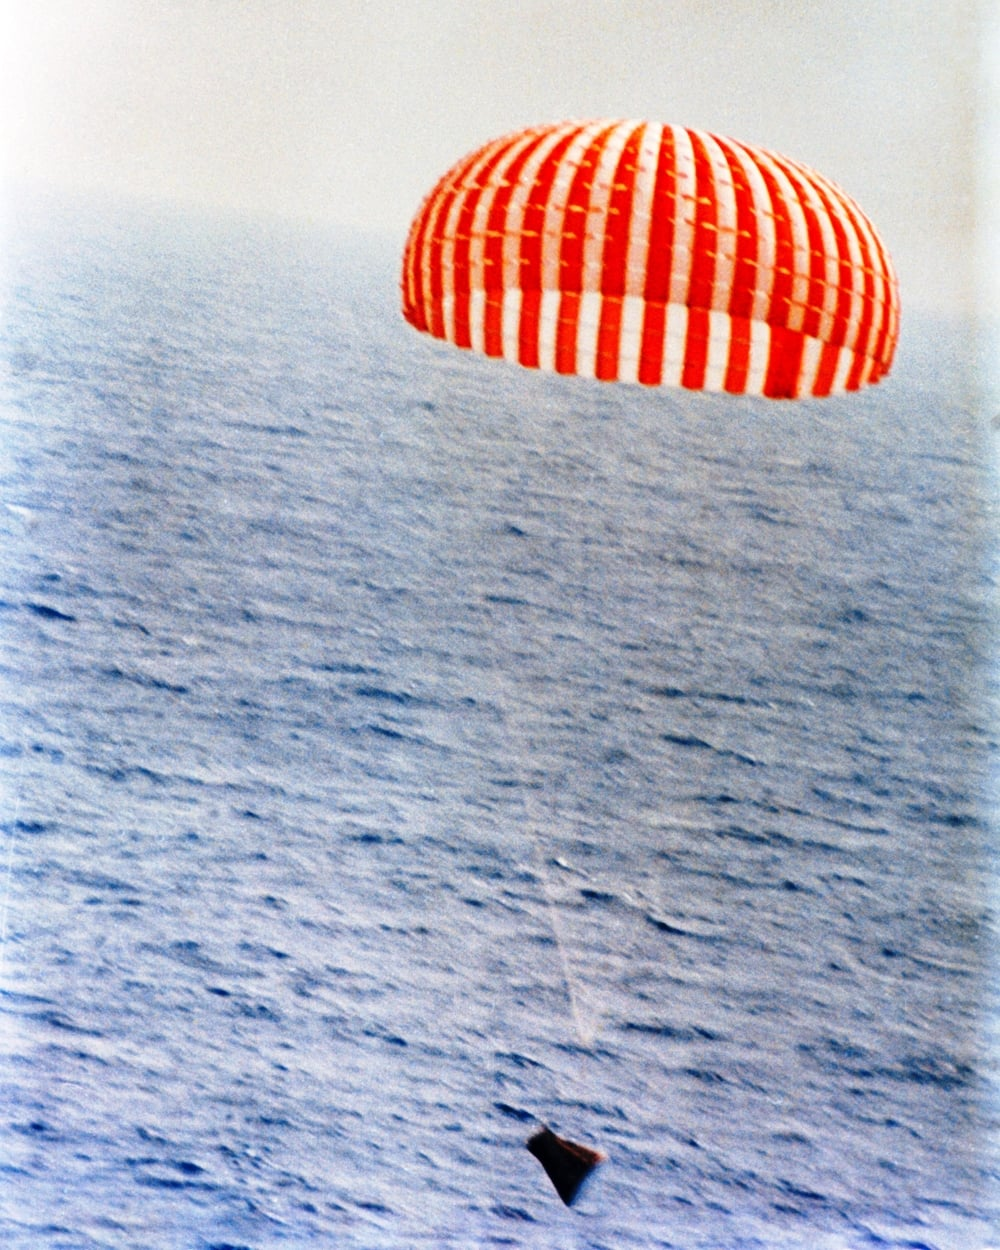 Gemini 9 nearing splashdown on June 6, 1966. Note the truncated nose and the high attach point of the parachute risers to the nearly-invisible bridle. (NASA Photo s66-34115.)